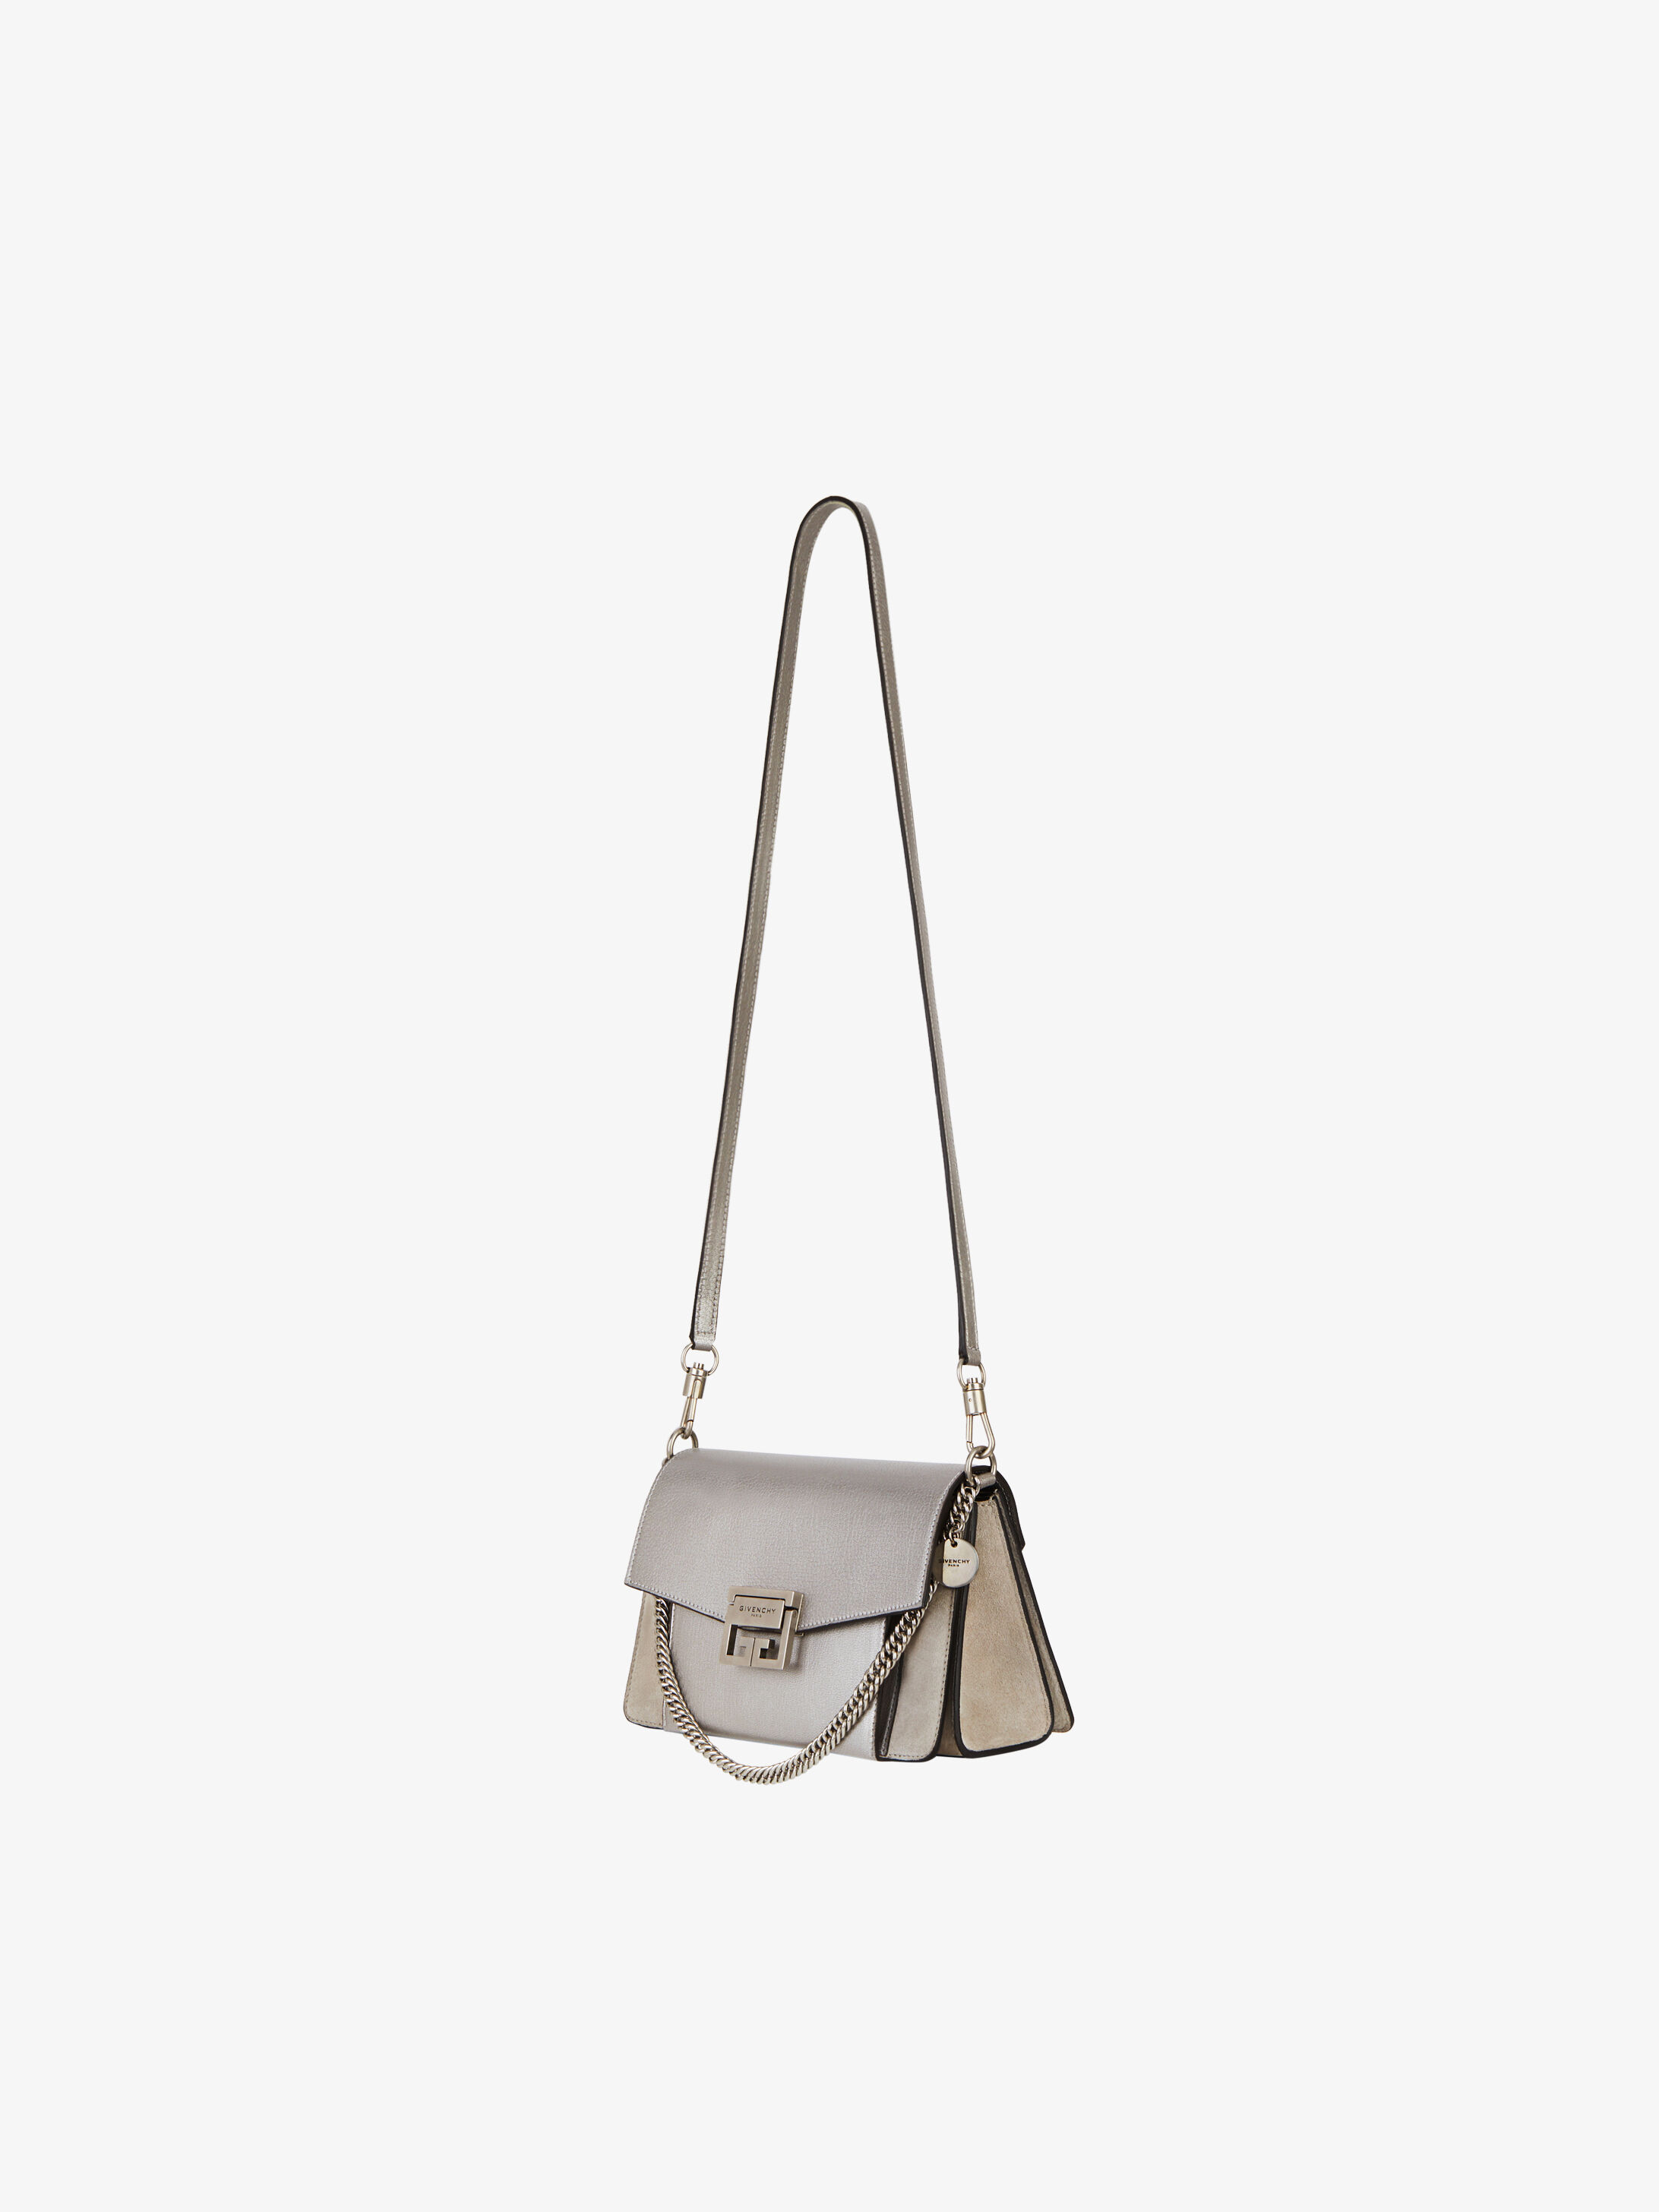 3e52c869dd743 Women's Cross-body Bags collection by Givenchy. | GIVENCHY Paris